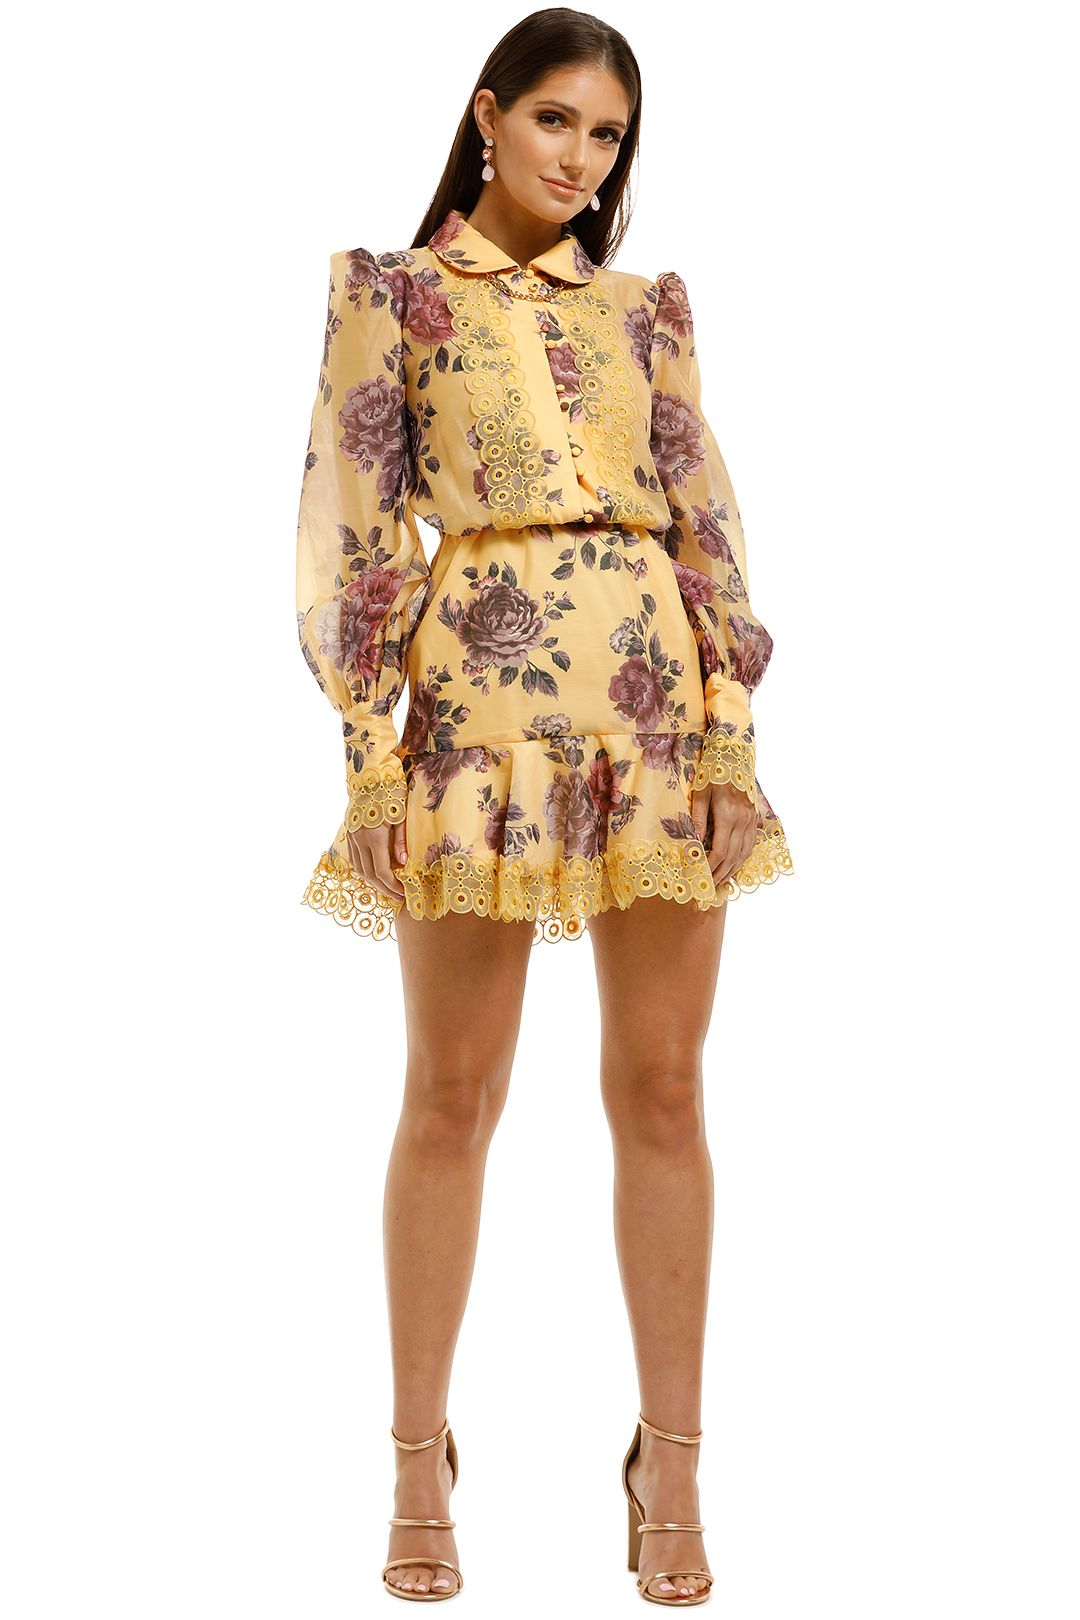 Keepsake-the-Label-Atomic-LS-Mini-Dress-Butterscotch-Garden-Front